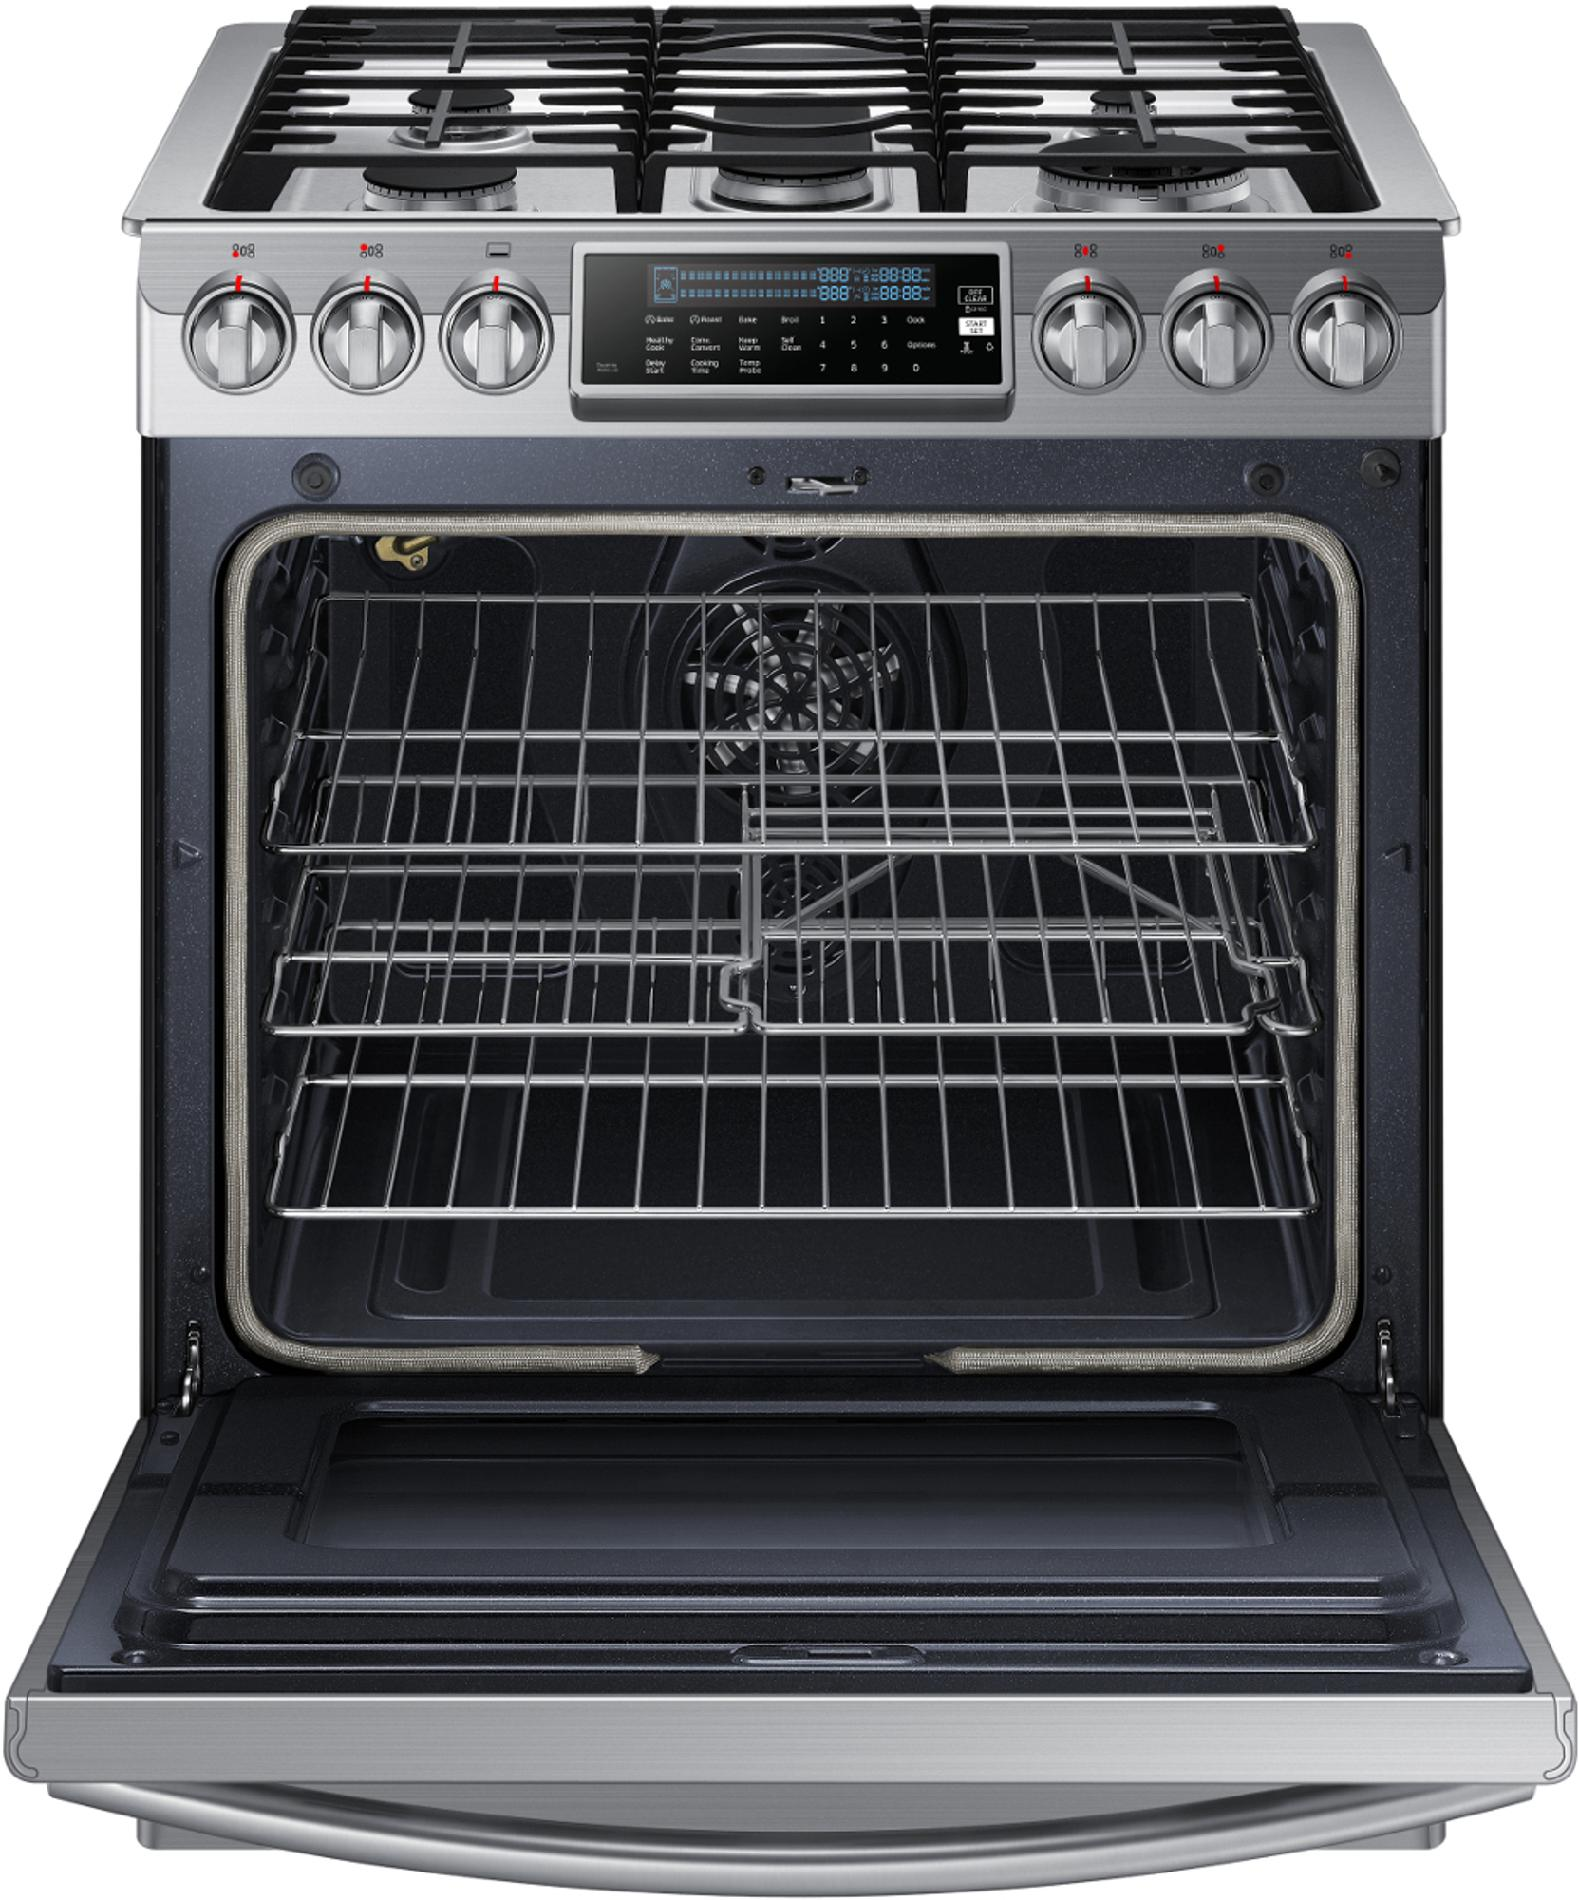 Samsung NX58H9500WS 5.8 cu. ft. Slide-In Gas Range w/ Intuitive Controls - Stainless Steel